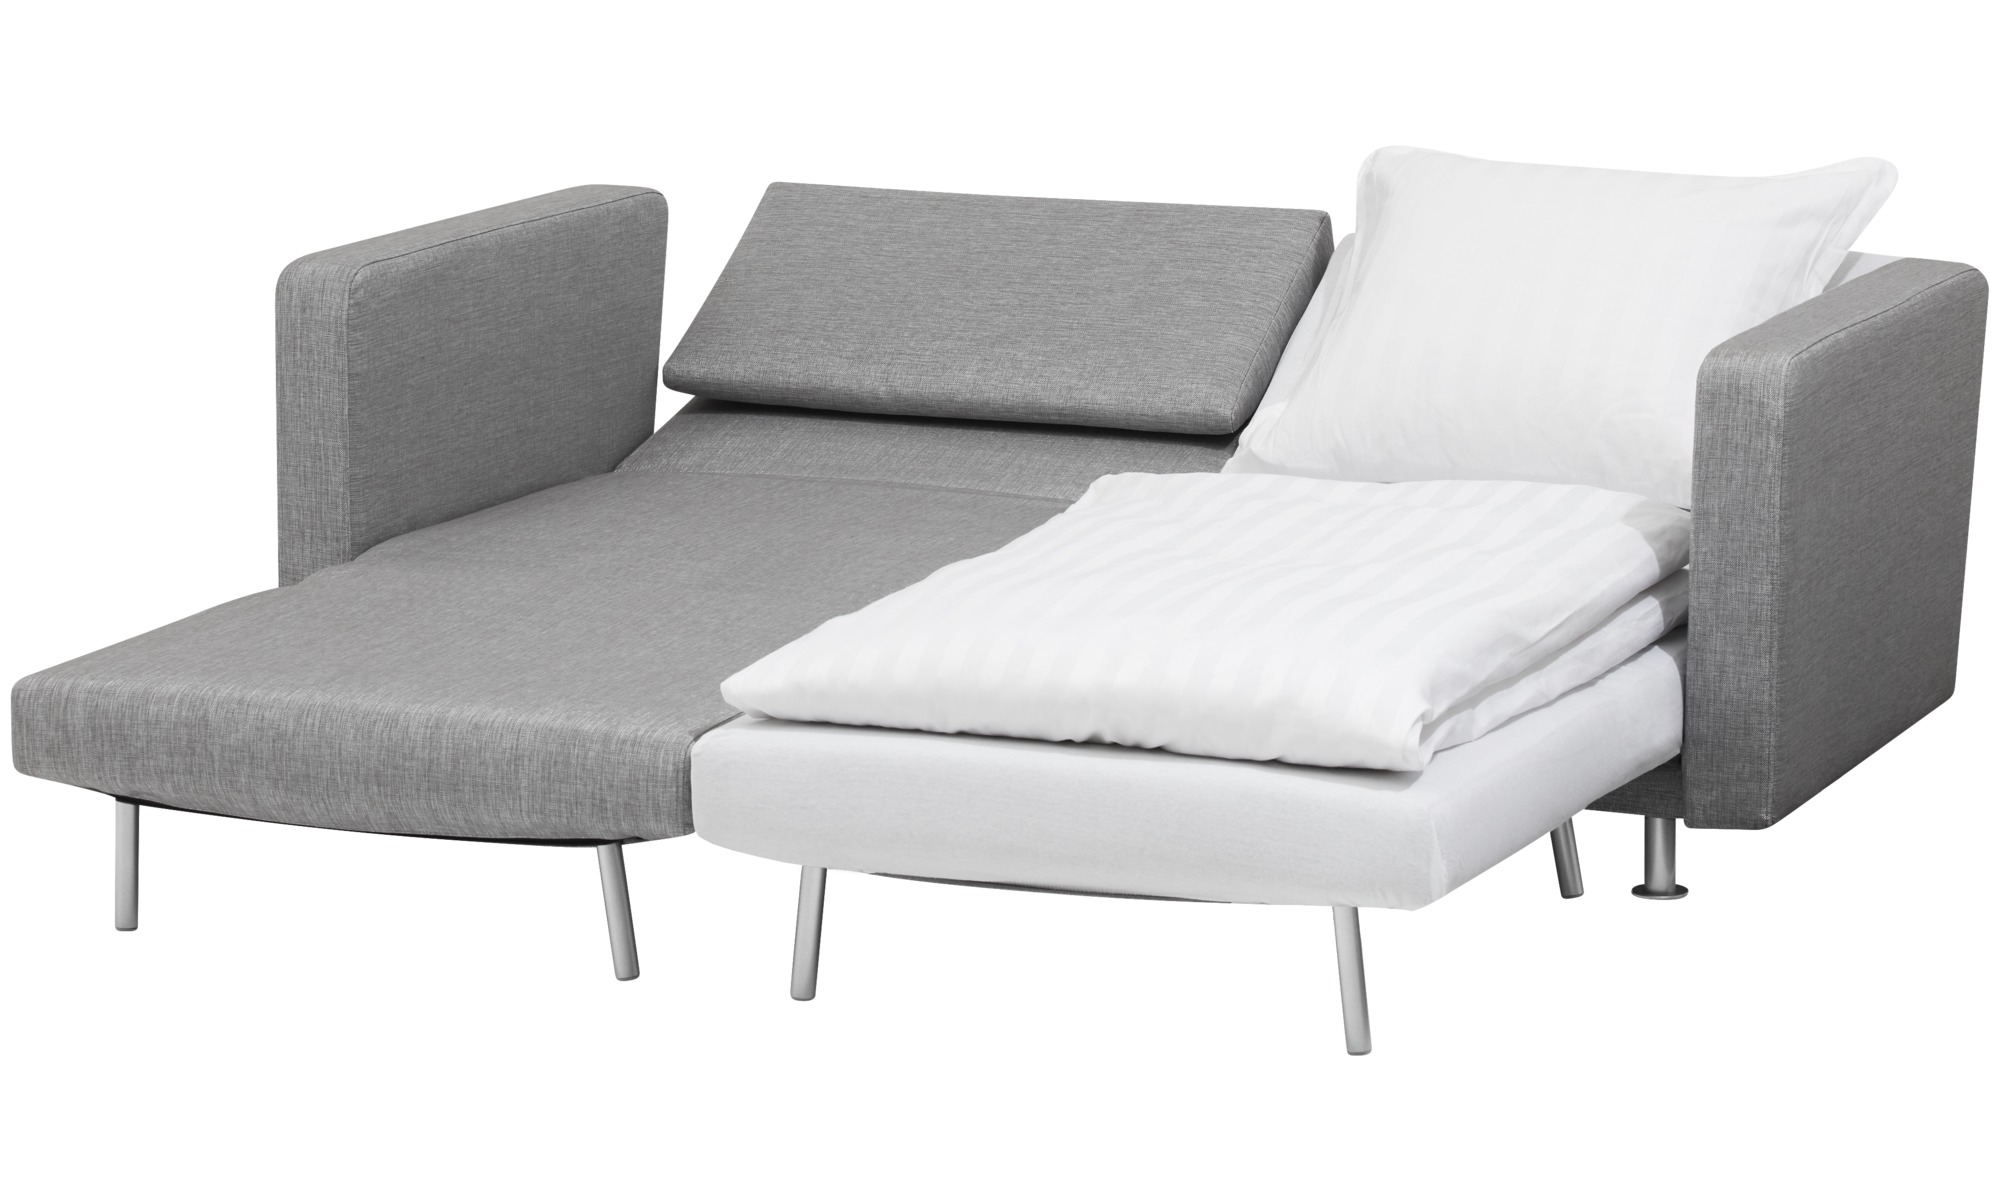 Latest Sofa Beds – Melo 2 Sofa With Reclining And Sleeping Function For Chaise Lounge Sofa Beds (View 5 of 15)